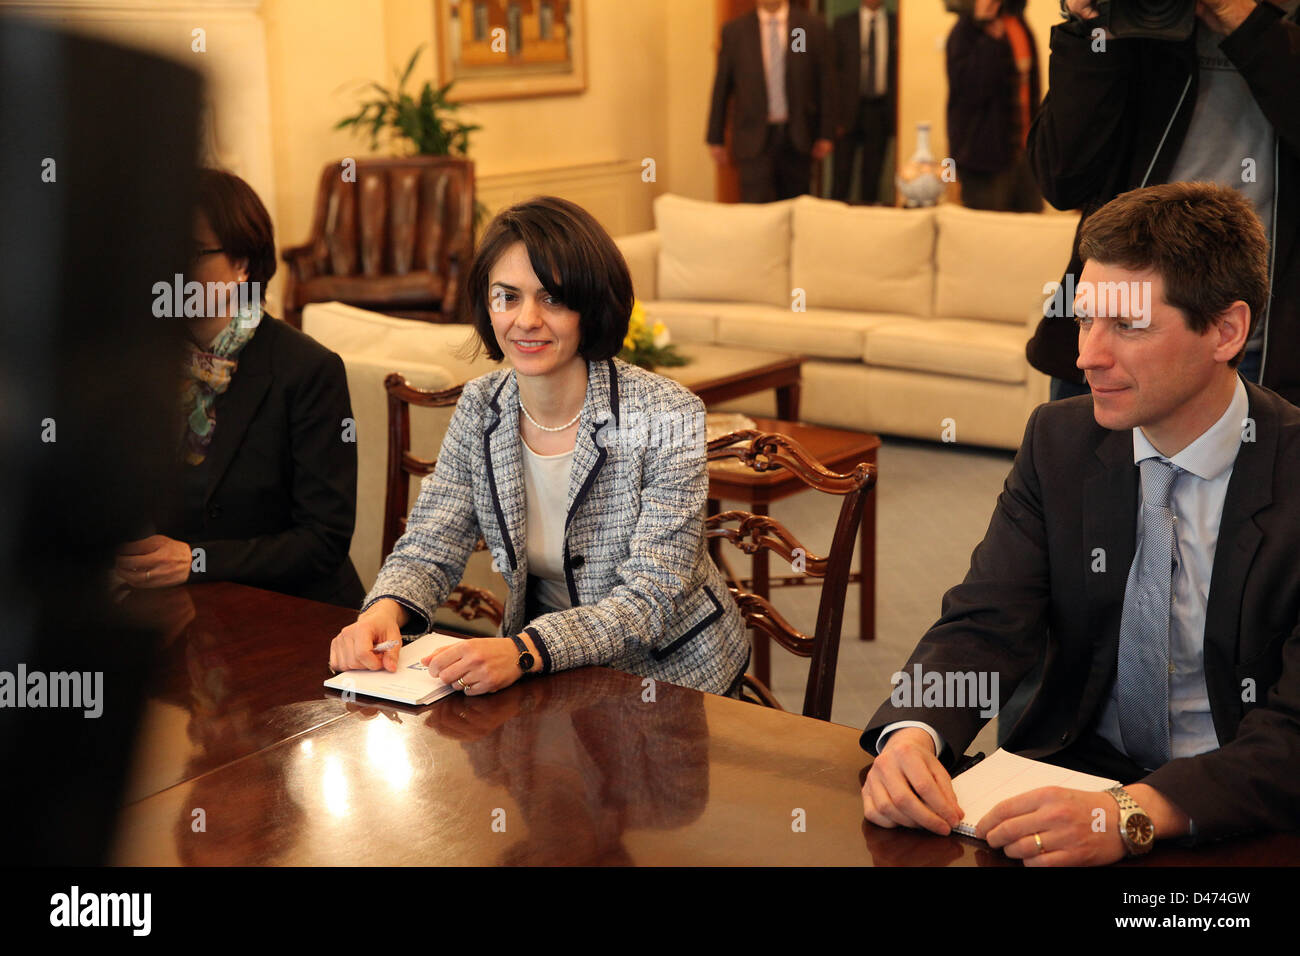 Nicosia, Cyprus. 7th March 2013. From Left to right Delia Velculescu from IMF and Maarten Verwey from European Commision - Stock Image